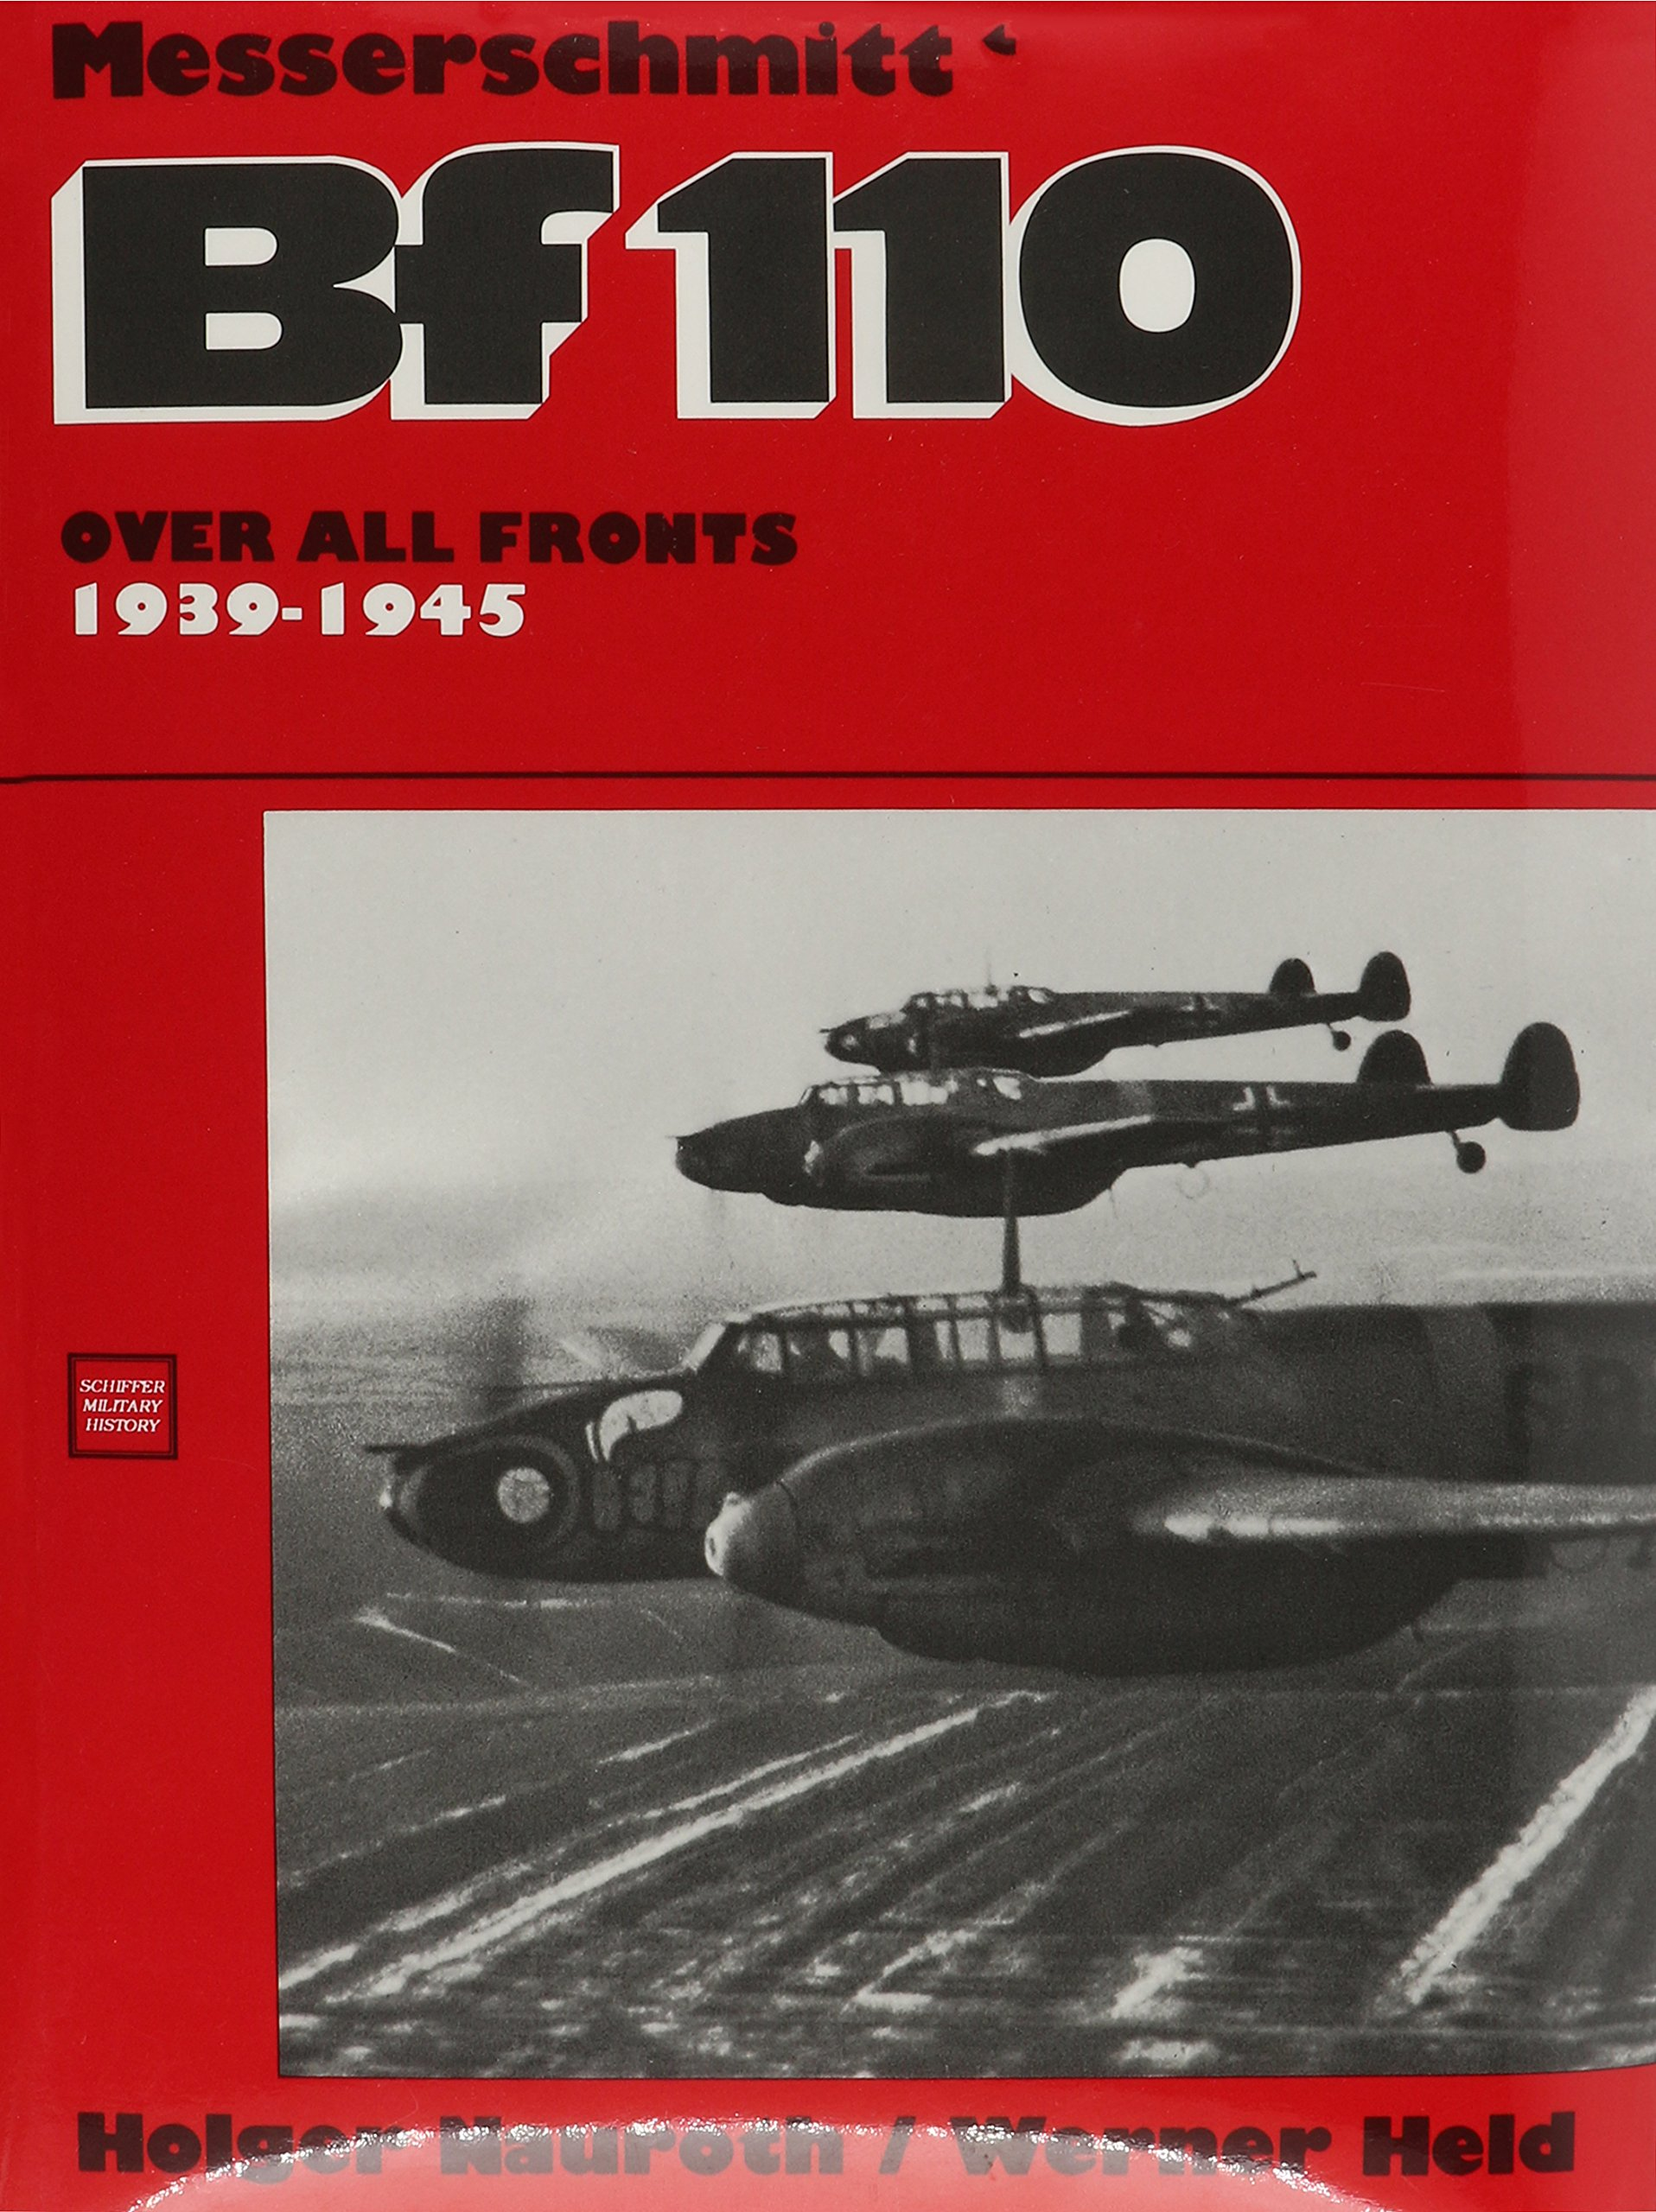 Download Nauroth, H: Messerschmitt Bf 110 1939-1945 